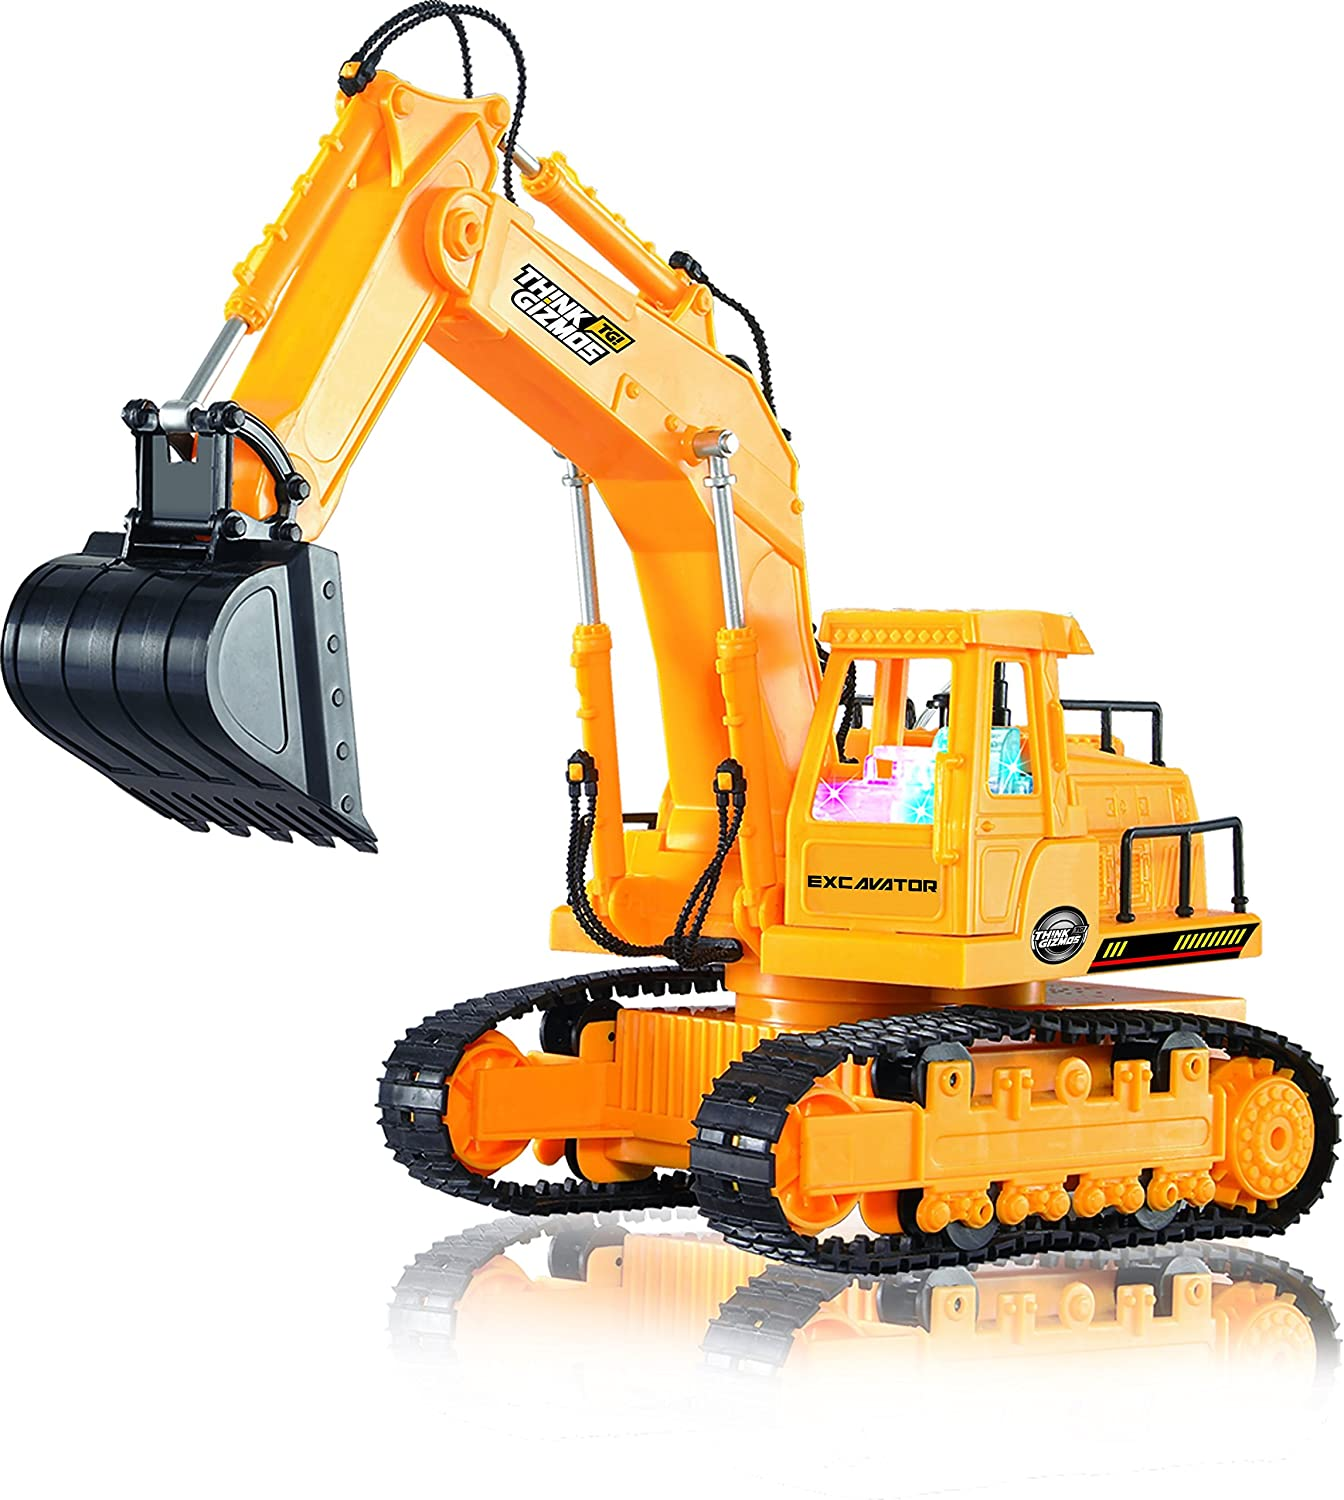 amazon com remote control toy excavator construction vehicle